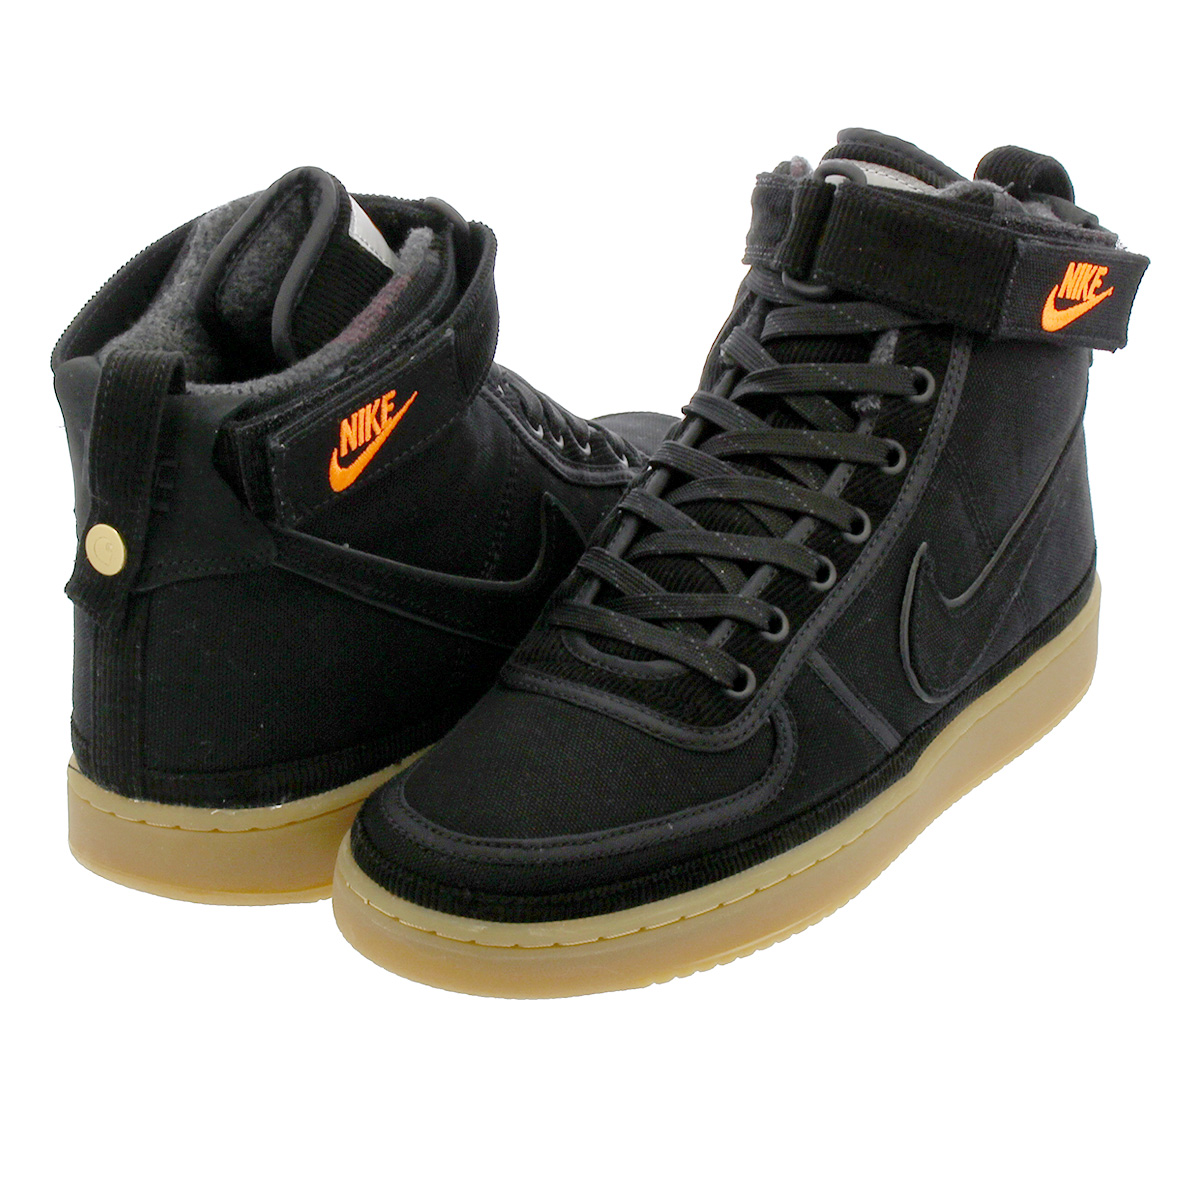 NIKE × CARHARTT WIP VANDAL HIGH SUPREME ナイキ × カーハート WIP バンダル ハイ サプリーム BLACK/GUM LIGHT BROWN/BLACK av4115-001